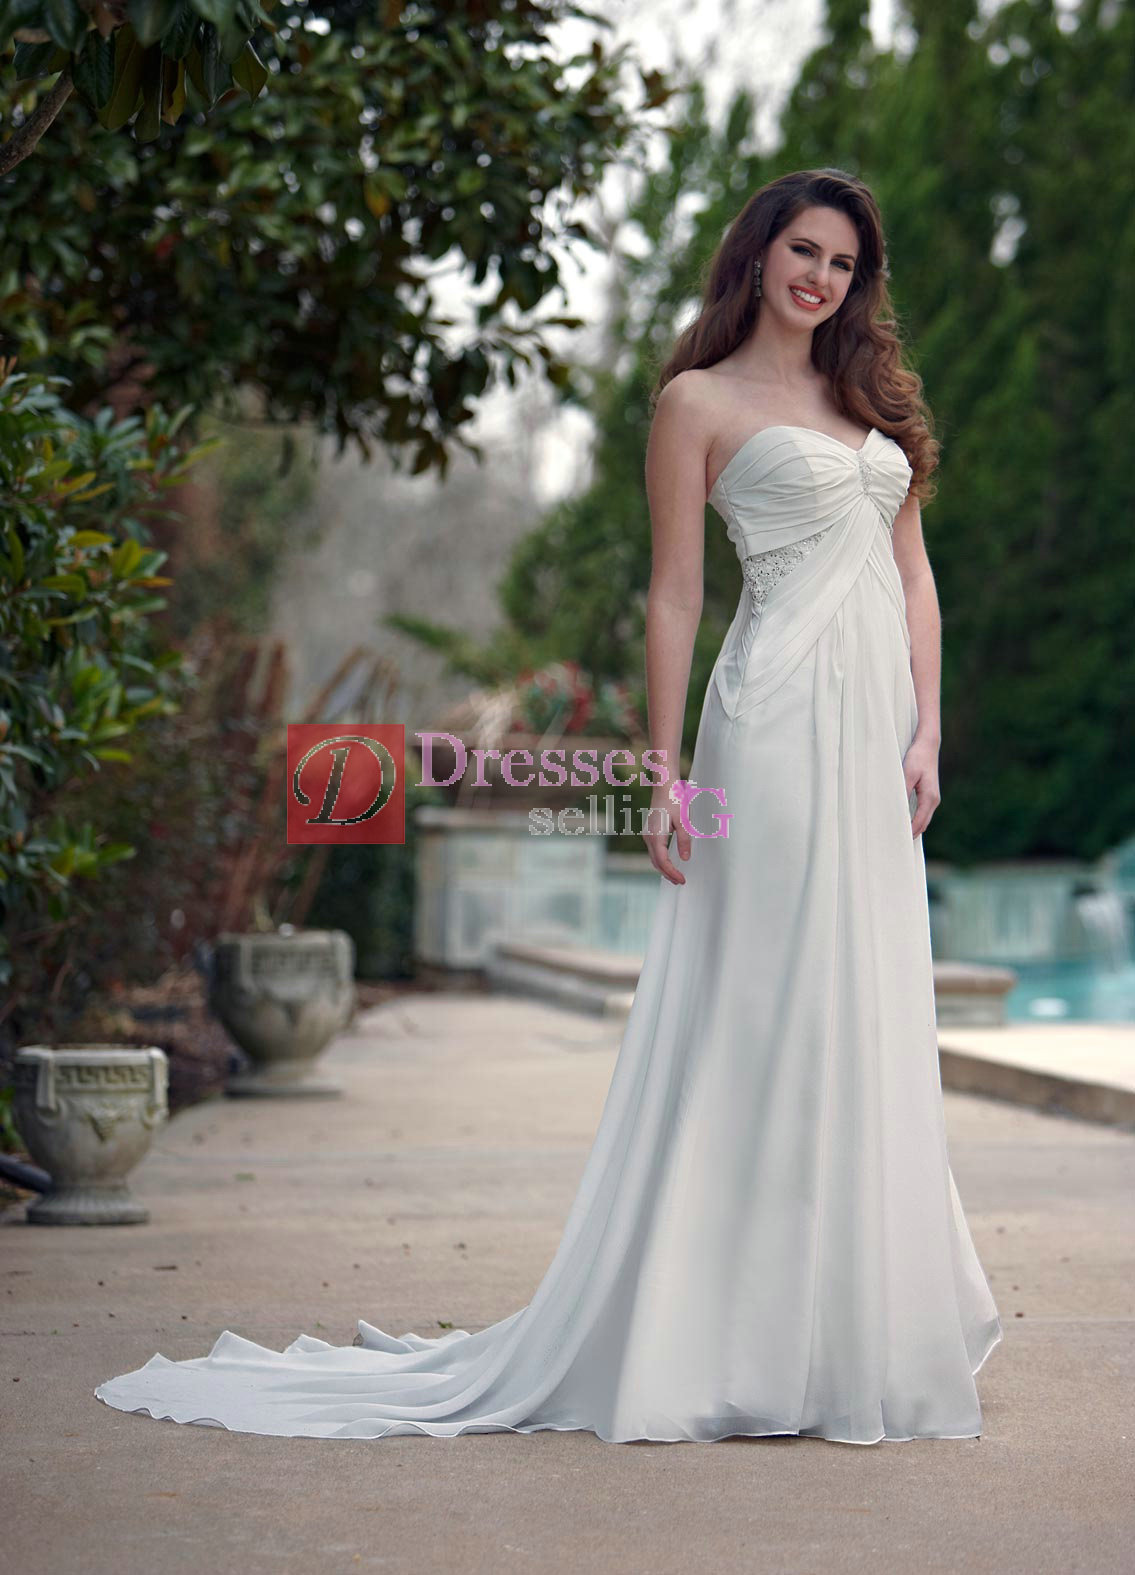 Whiteazalea maternity dresses choosing the maternity for Maternity dresses for wedding